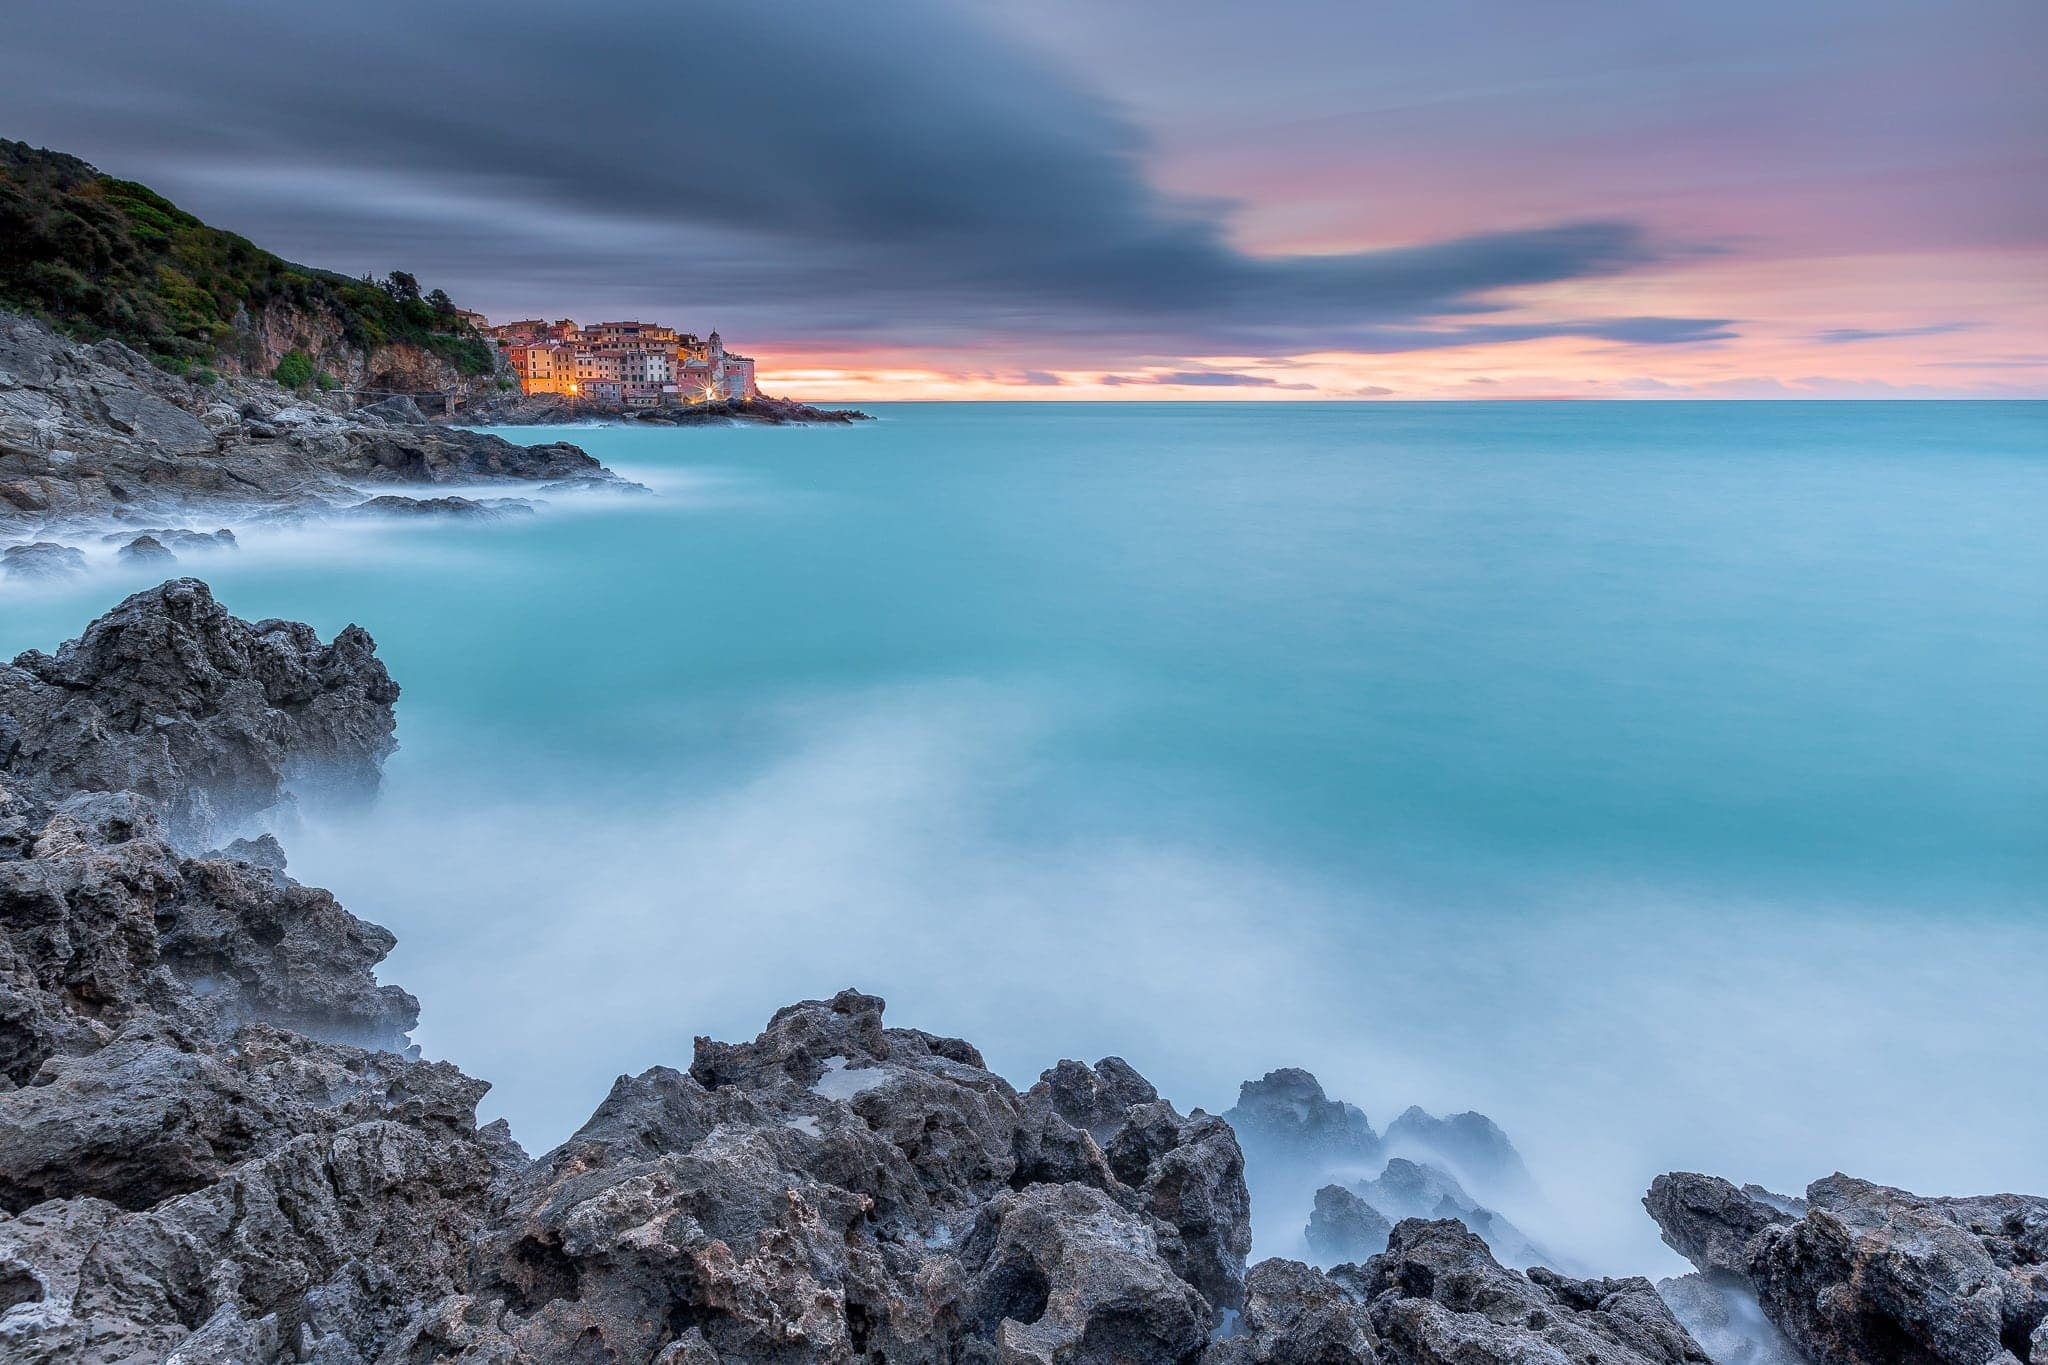 Francesco Gola Seascape Landscape Photography Long Exposure Sunrise Tellaro Italy